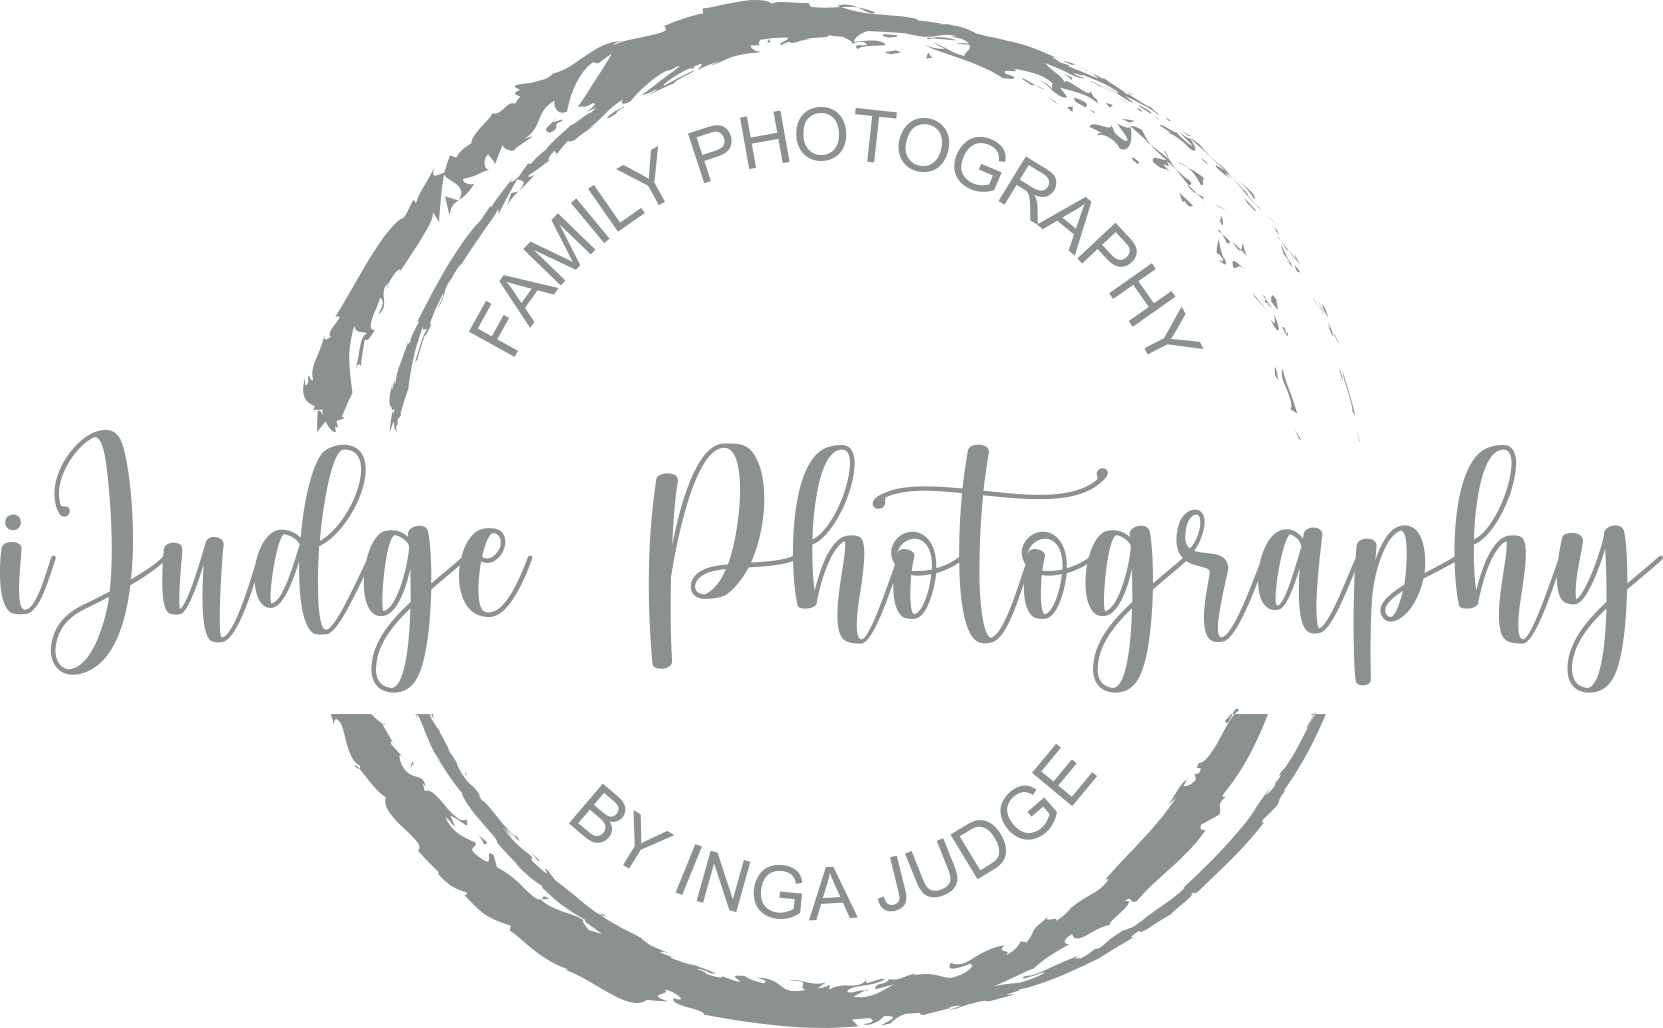 Children's and Family Photographer in Richmond Upon Thames – Inga Judge Ijudge photography